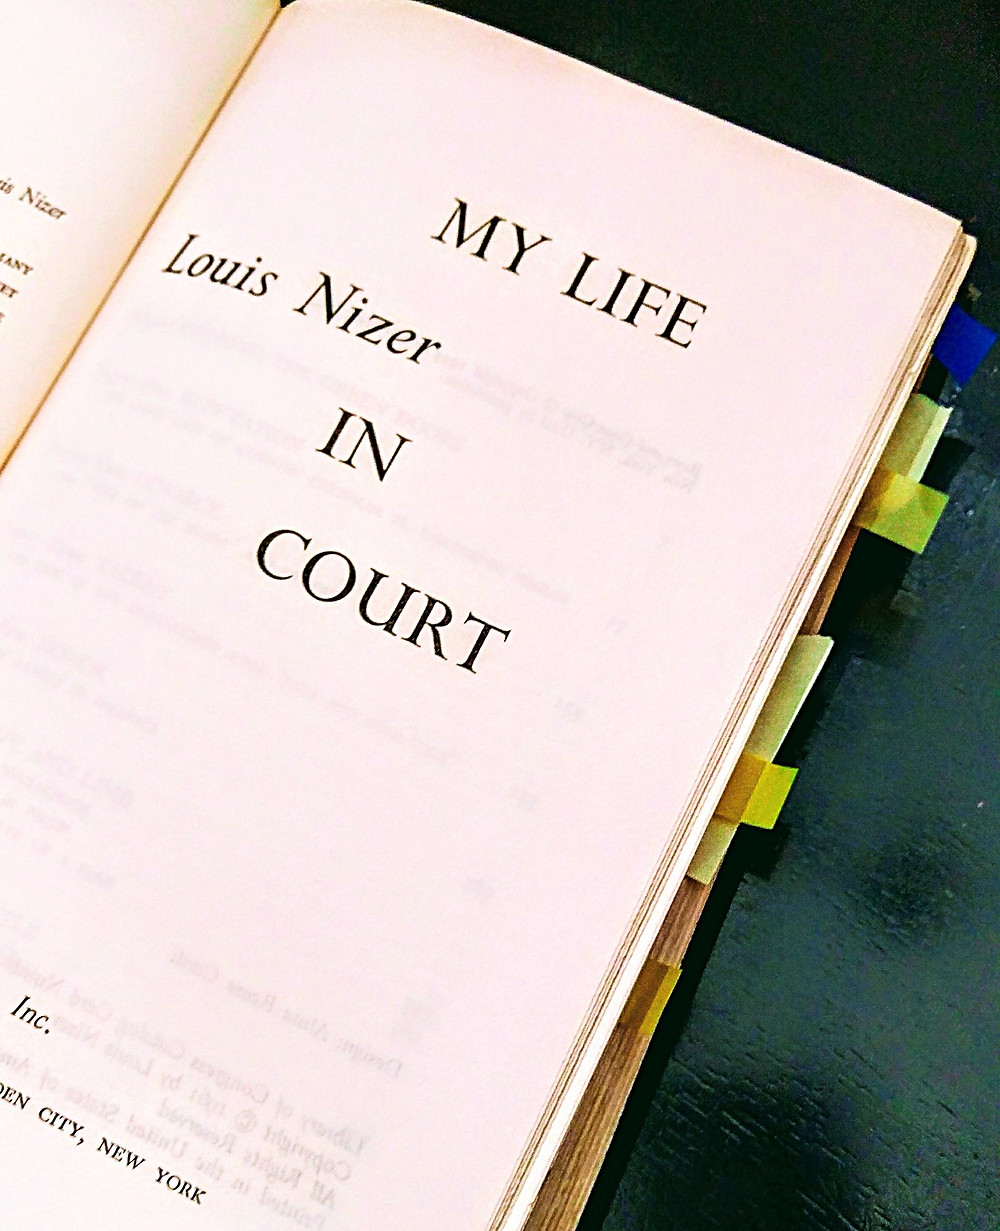 Louis Nizer My life in court a handbook for trial lawyers. Part of the library of Attorney John E. Reynolds' library.